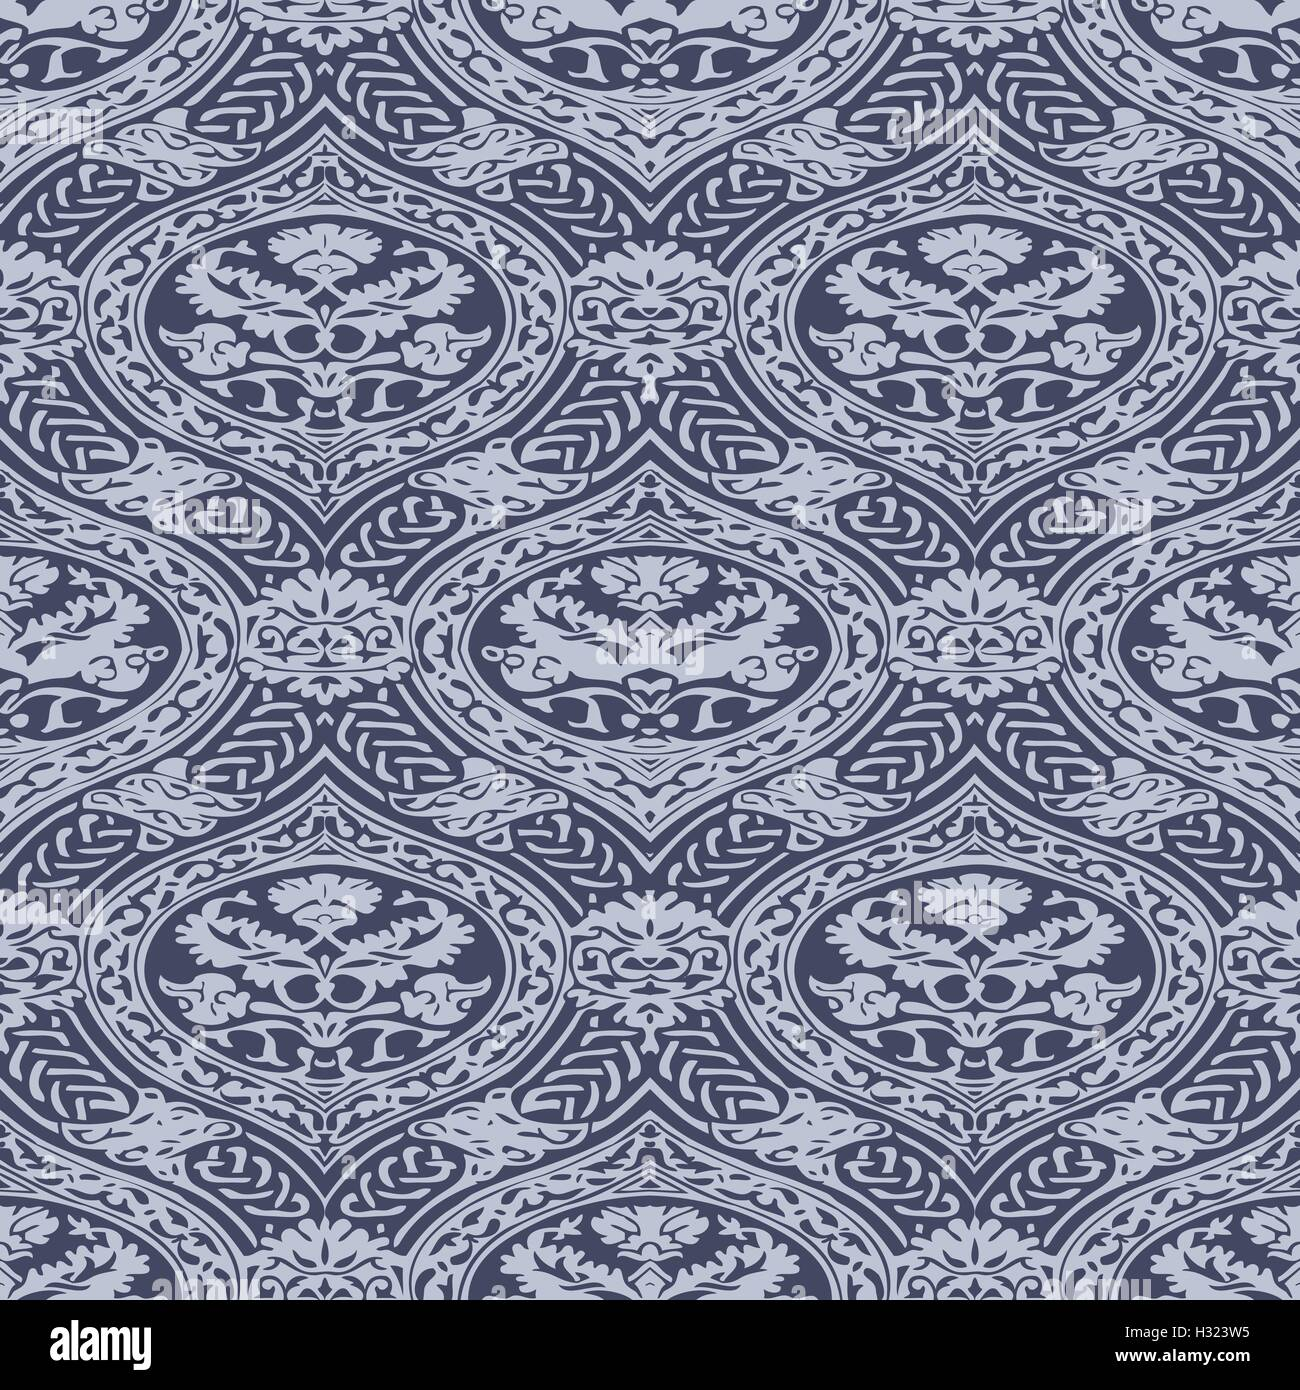 Vector seamless floral antique pattern with interlacing ribbons background - Stock Vector